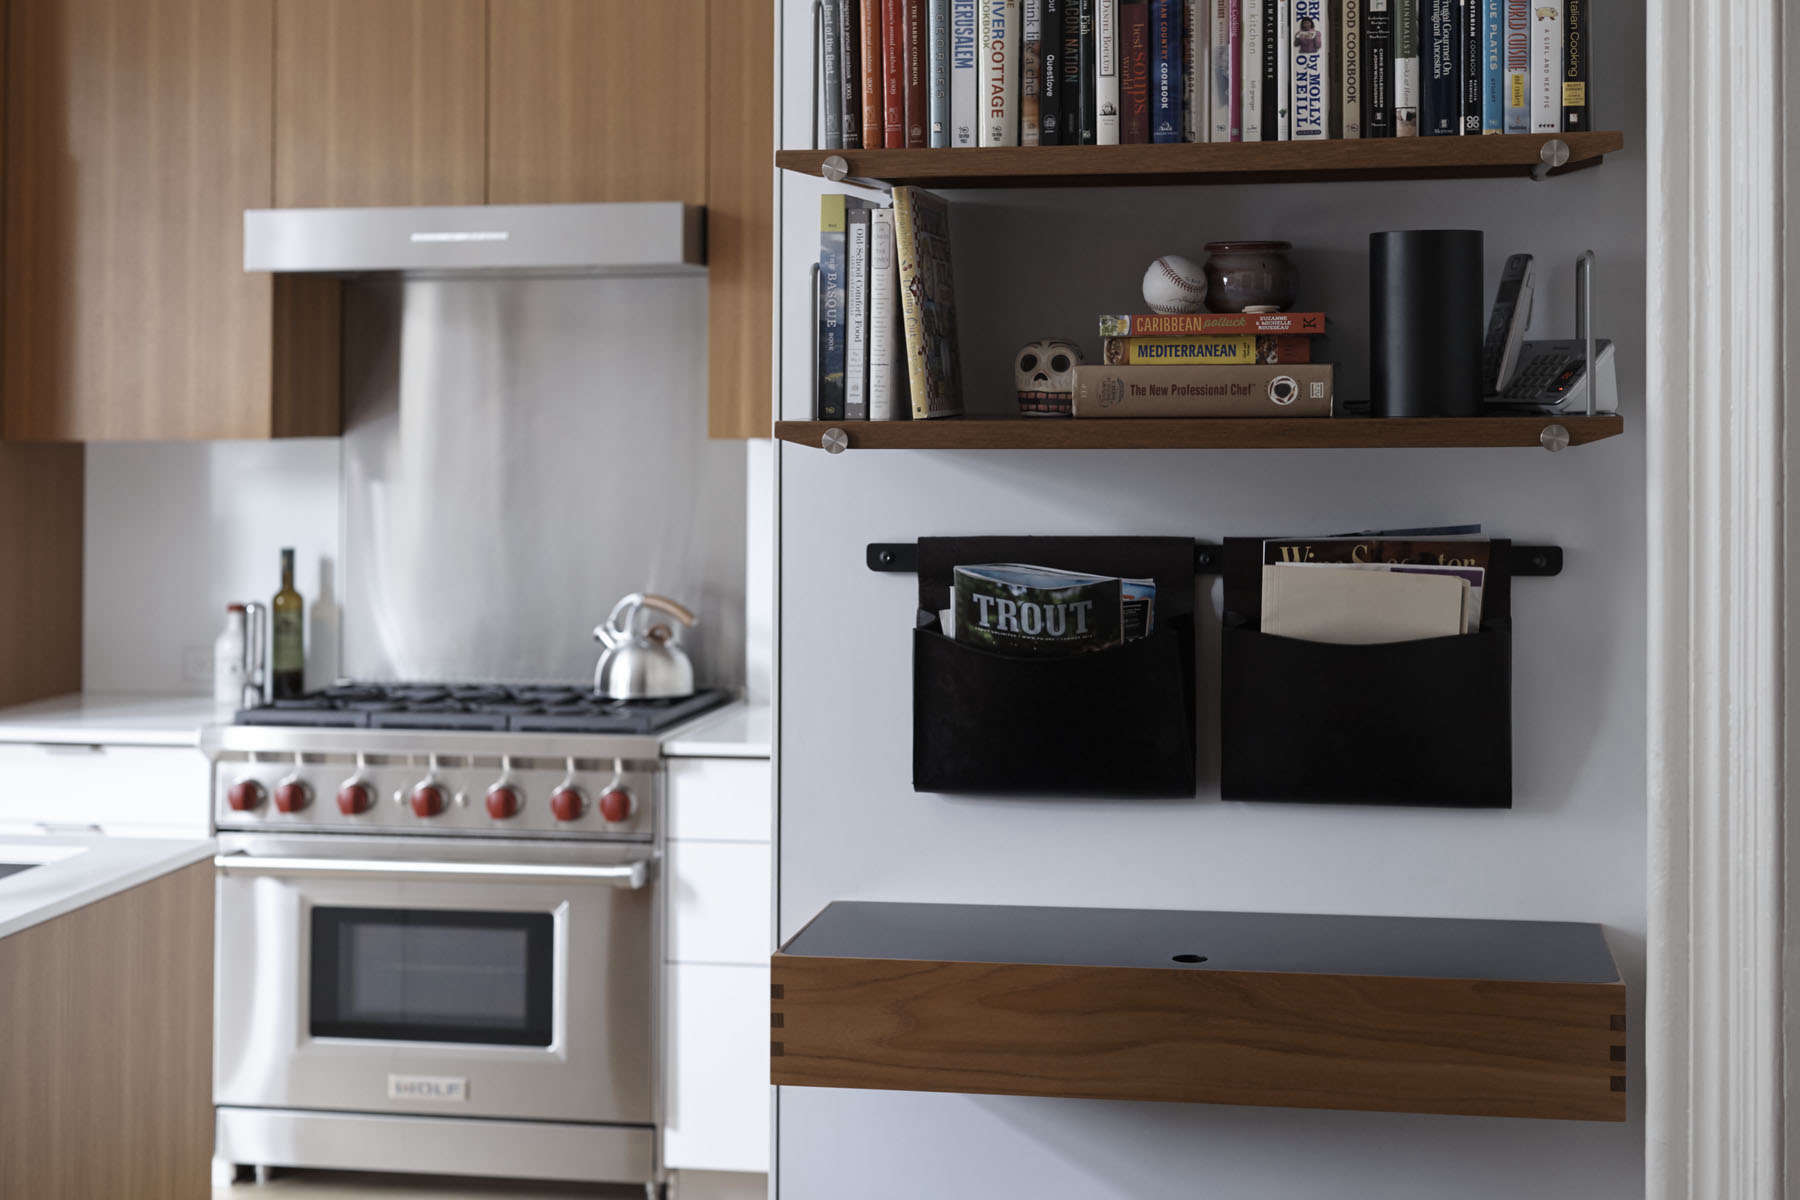 henrybuilt opencase shelves leather hanging pouches and a wall desk in a brooklyn kitchen. Interior Design Ideas. Home Design Ideas